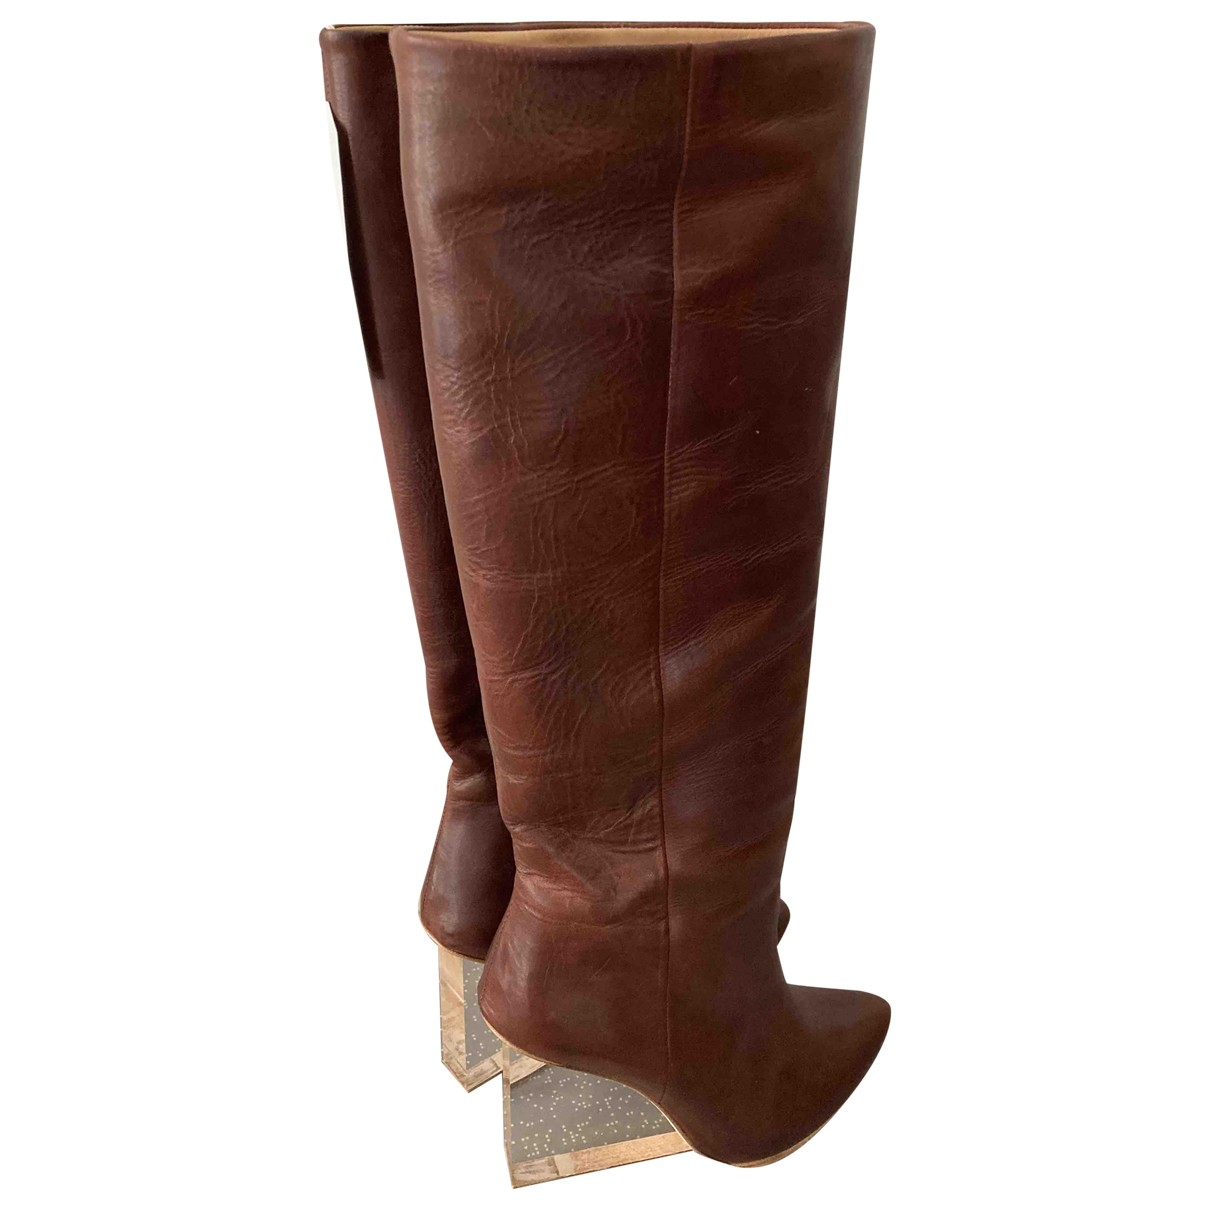 Maison Martin Margiela Pour H&m N Brown Leather Boots for Women 7 UK